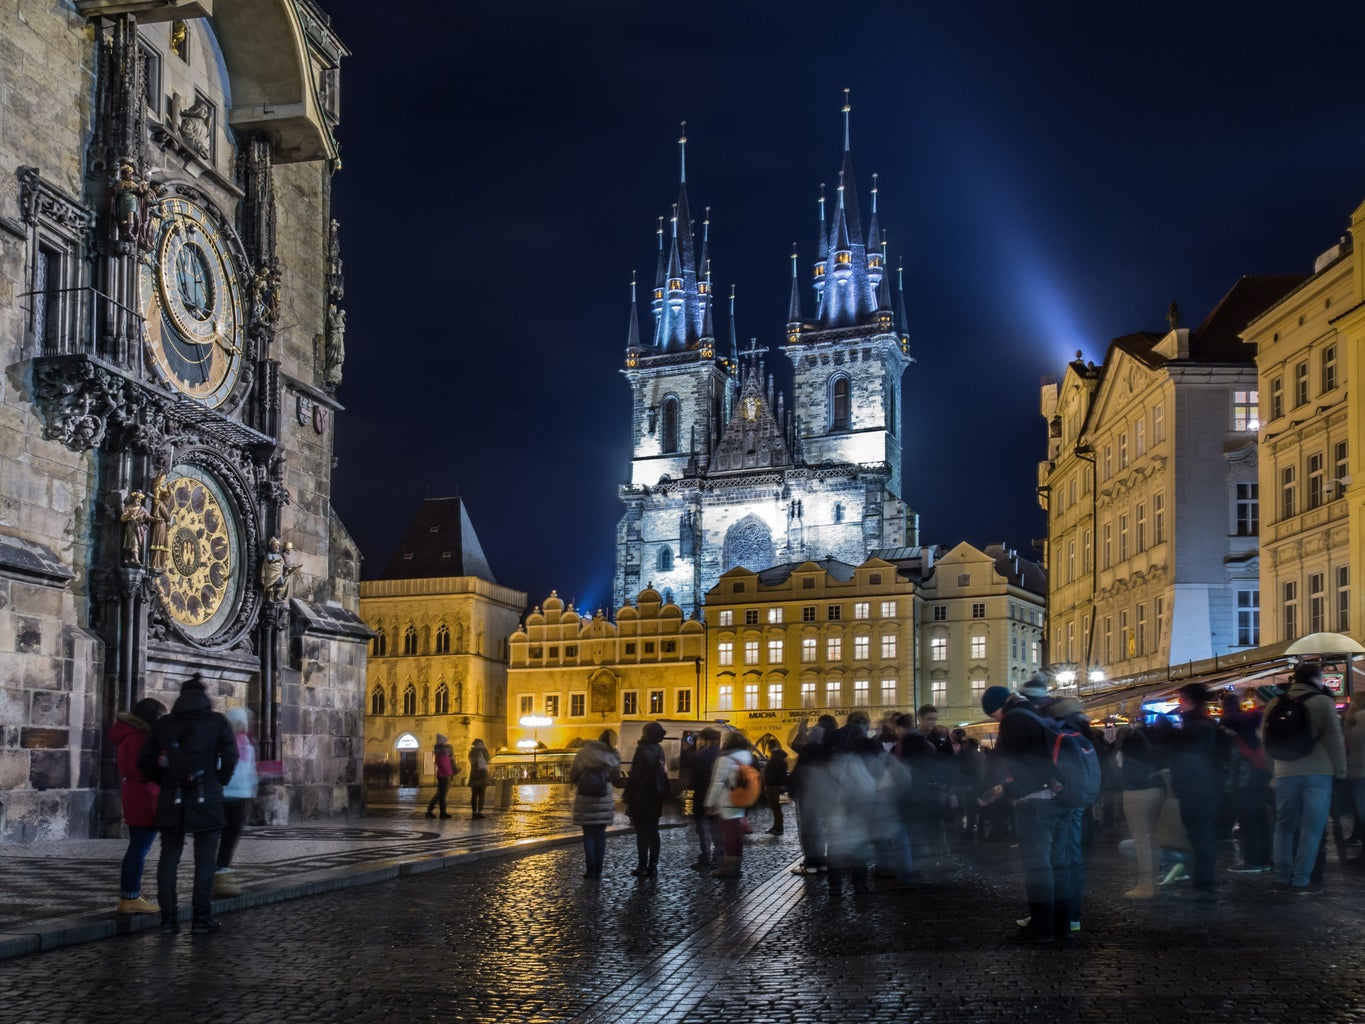 Prague courtyard with a group of pedestrians standing in the square, and white lights lighting up a building in the background.